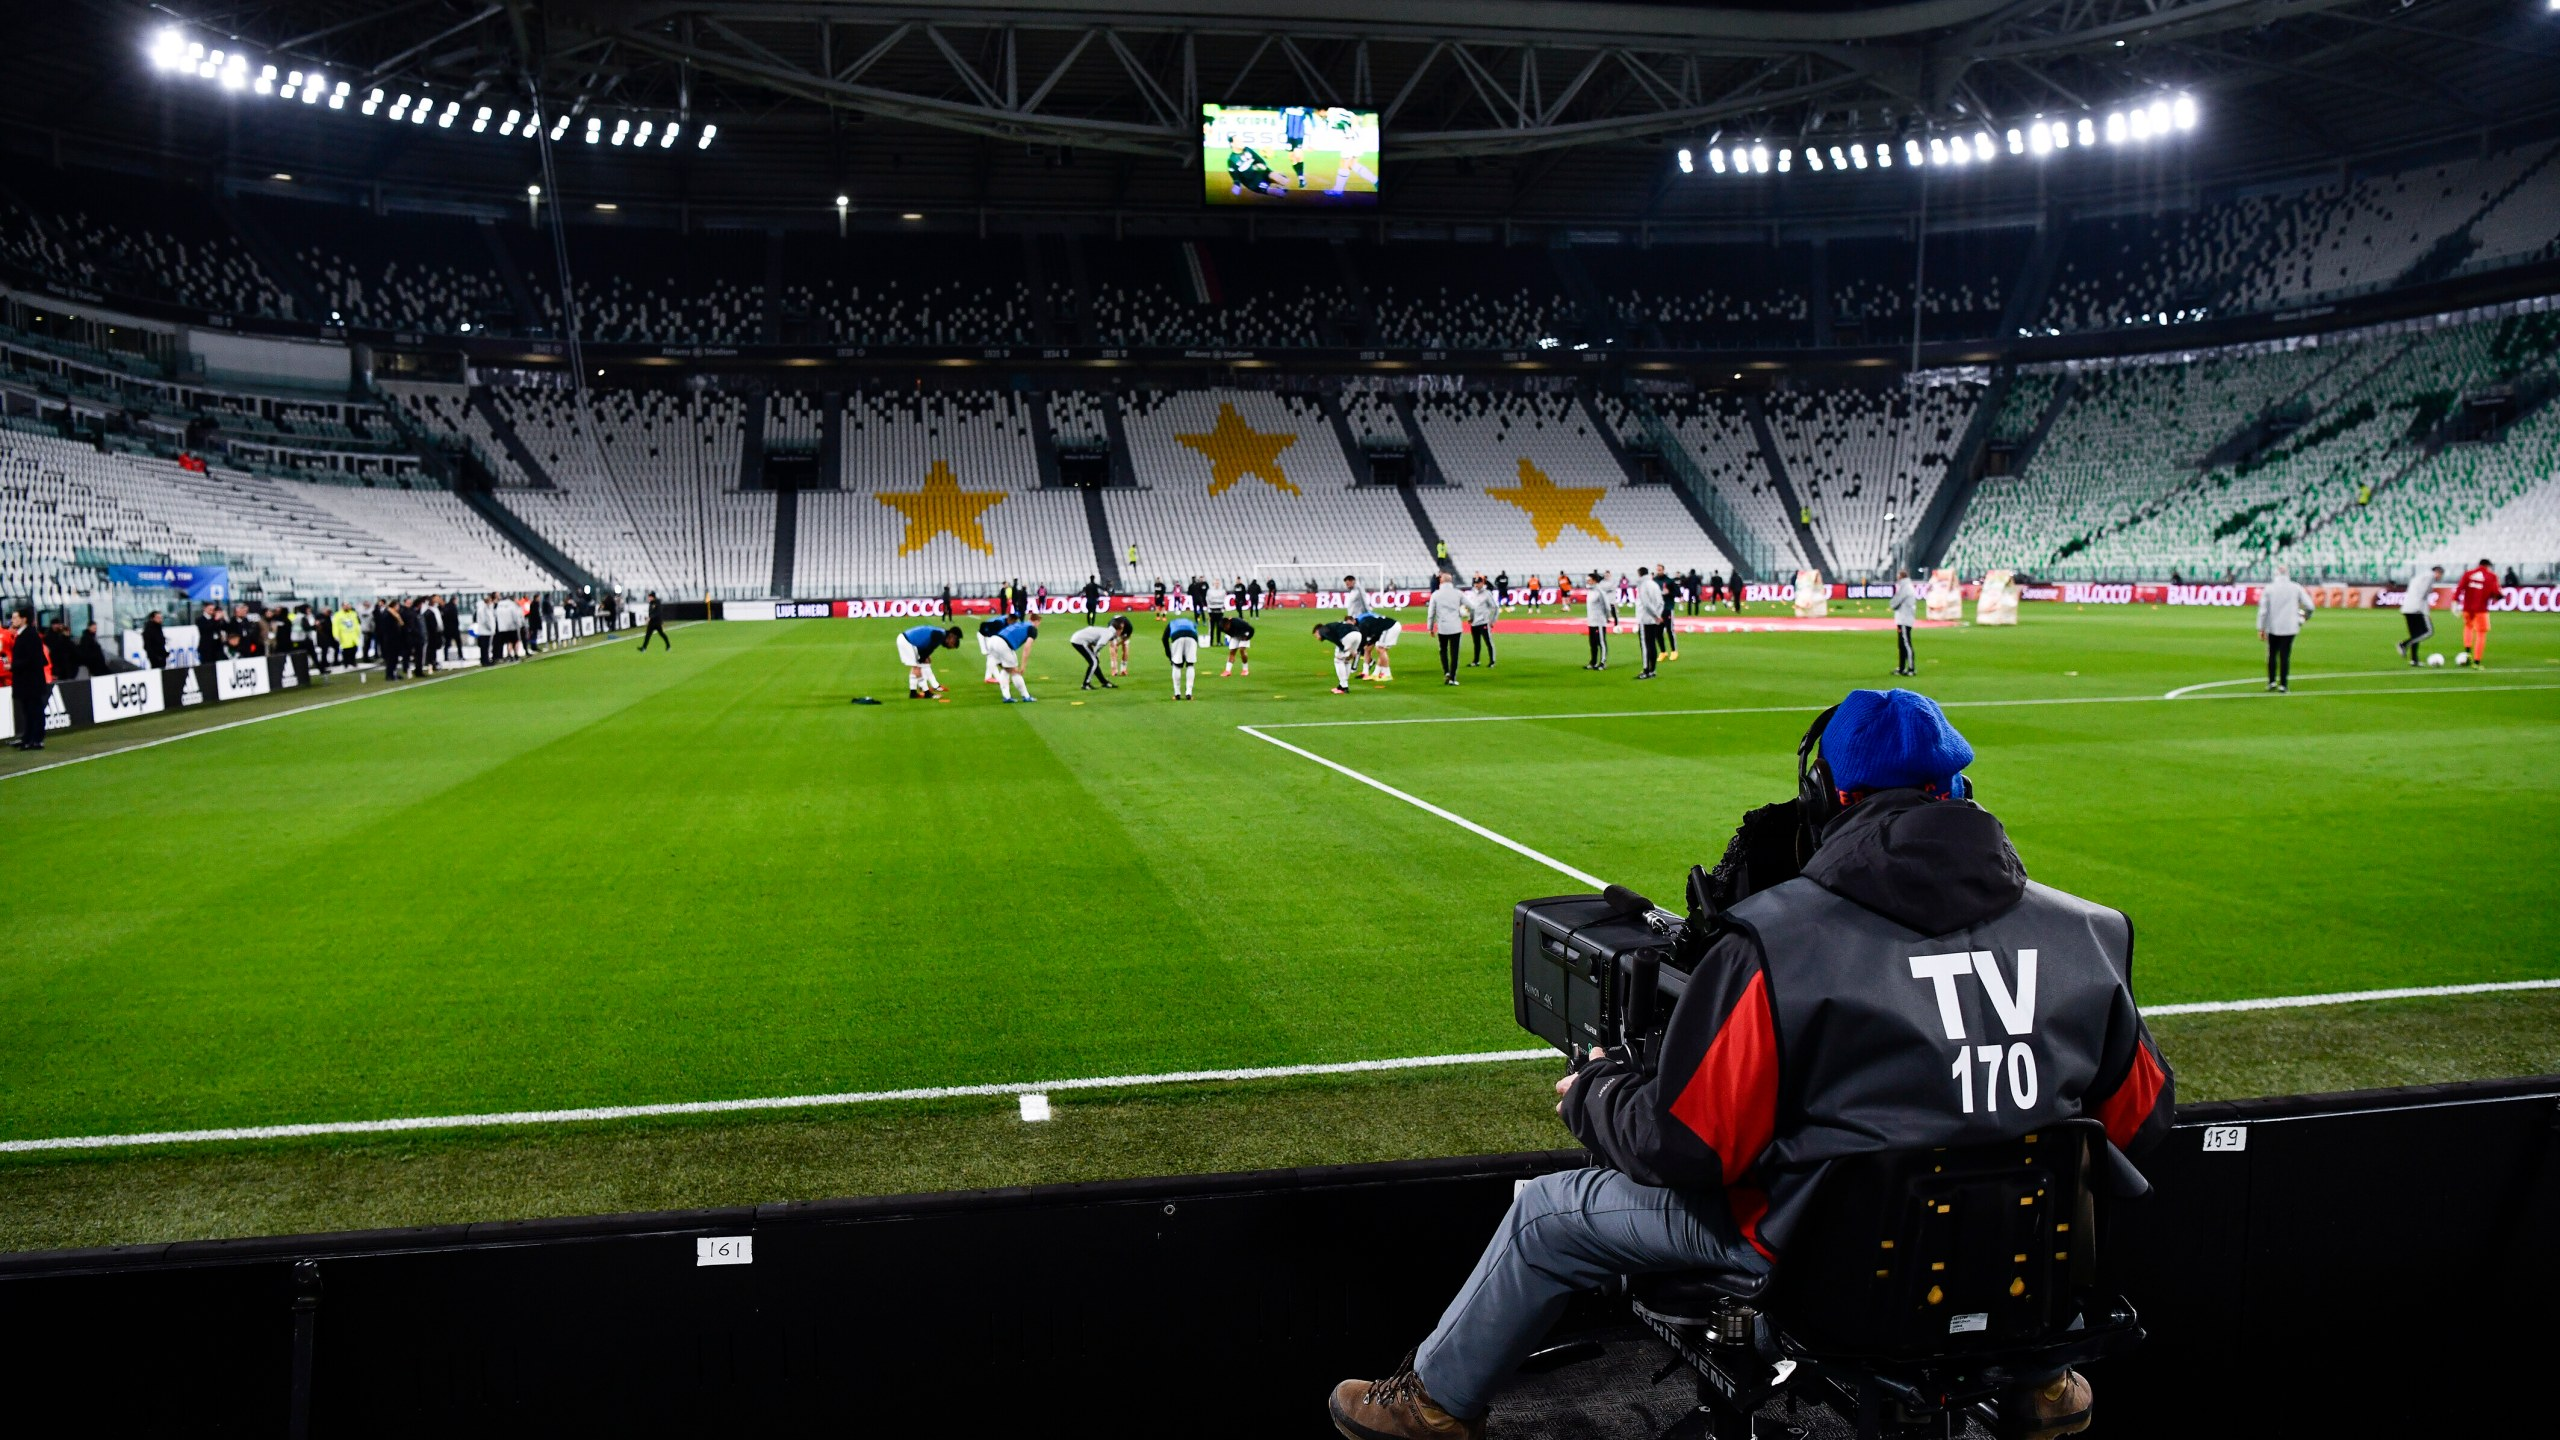 sporting events in italy to be halted because of virus wboy com 2